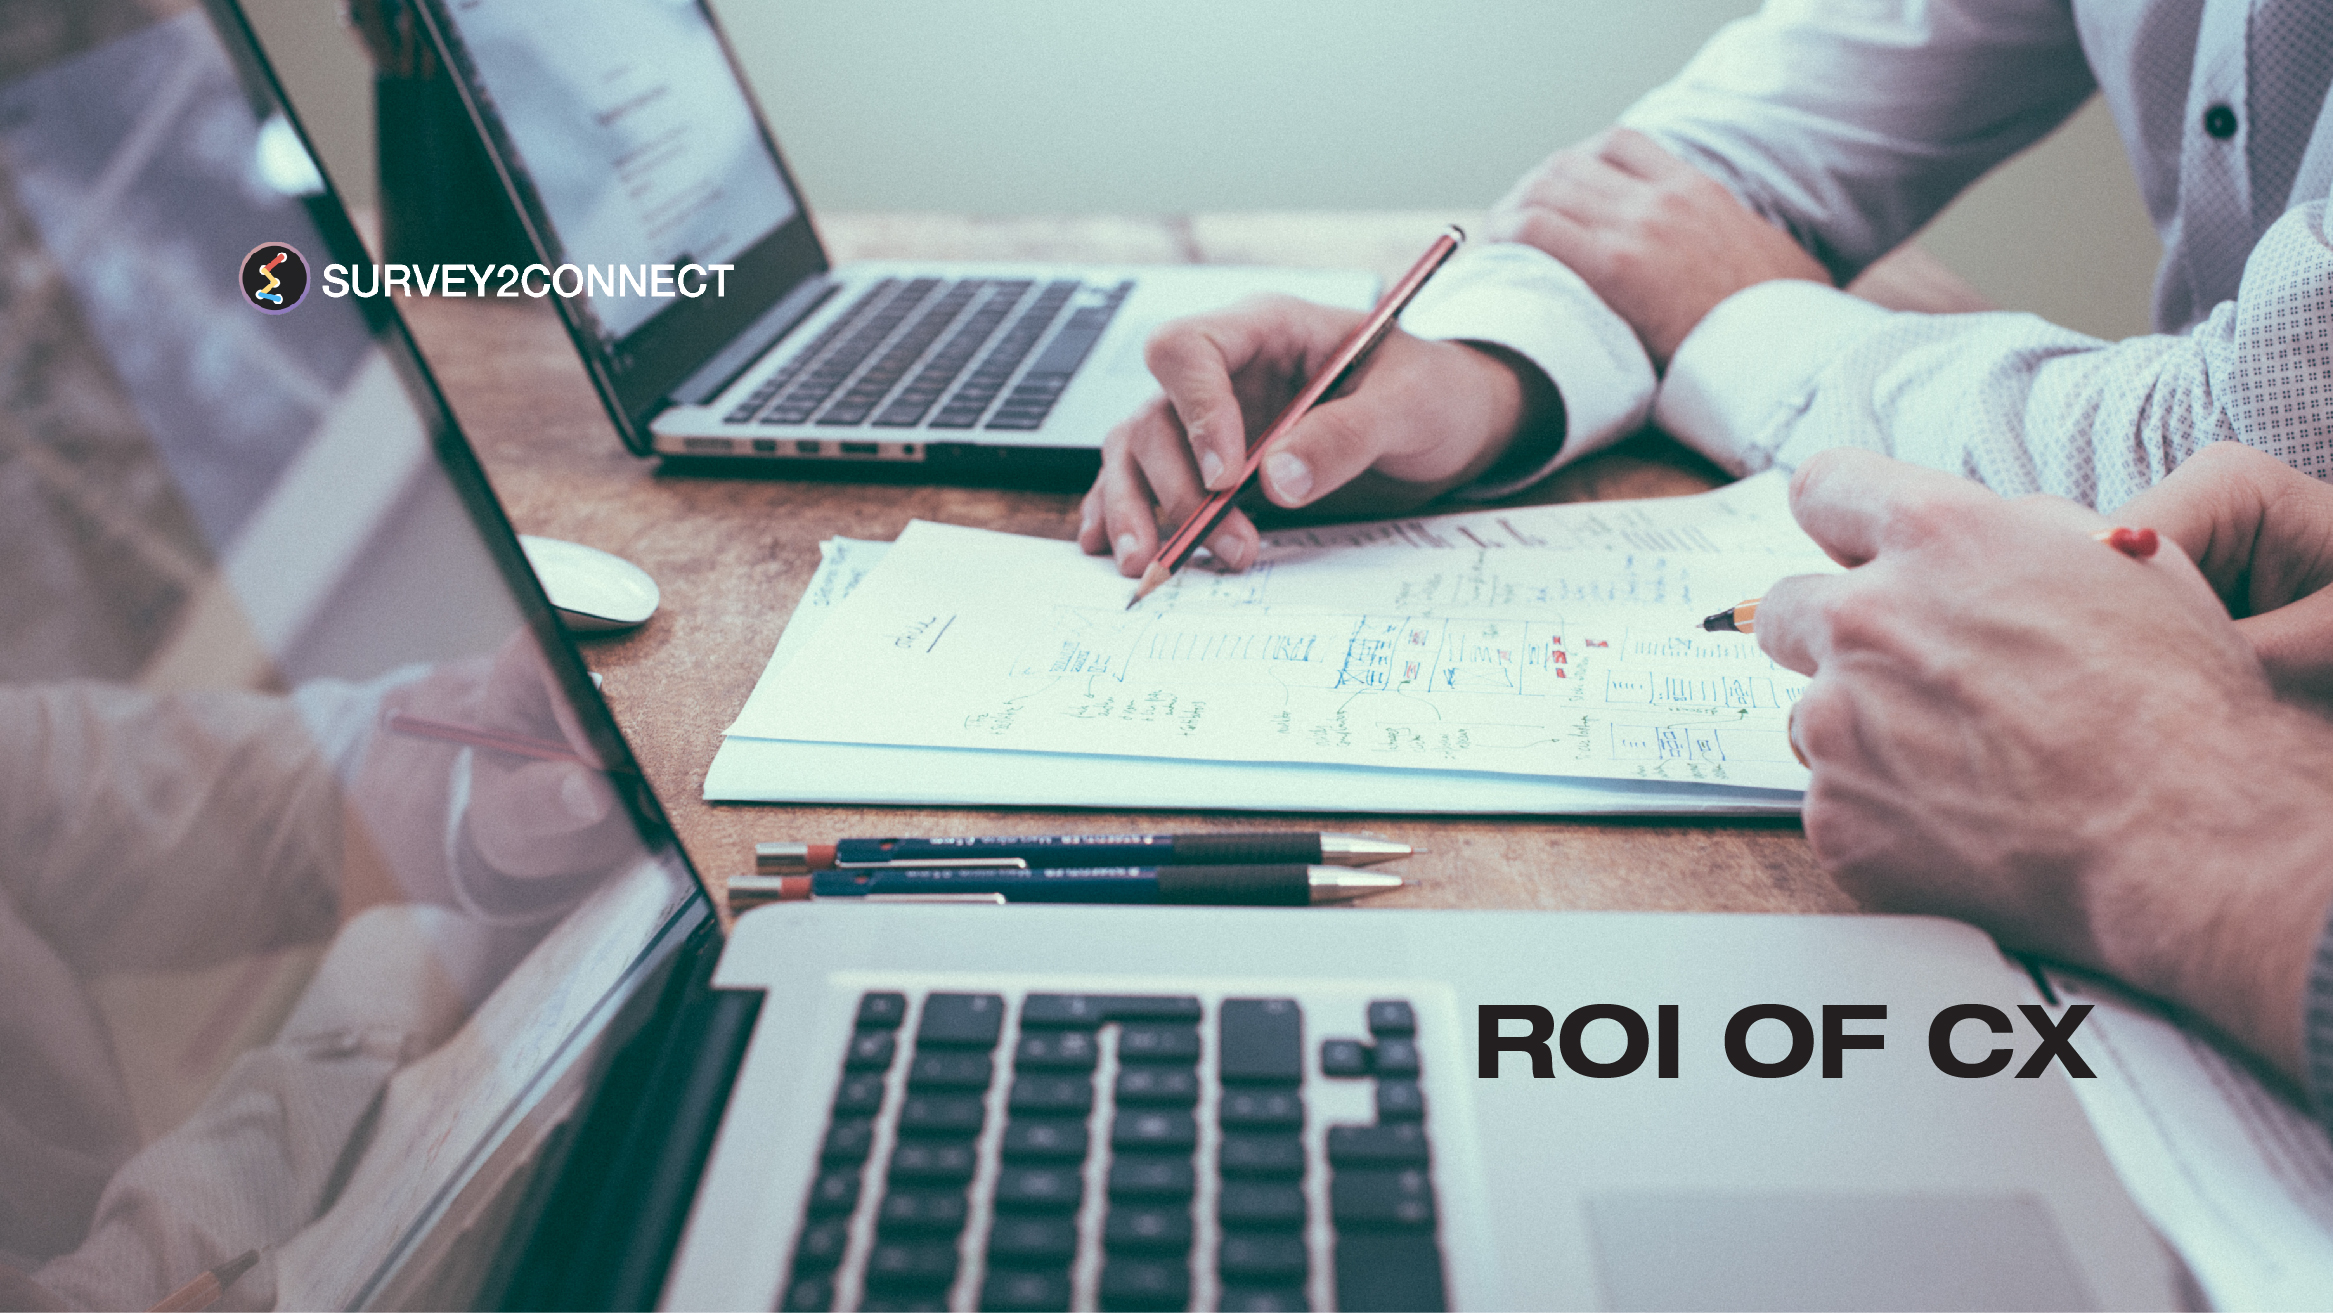 Calculating ROI of CX allows you to decide if your CX is a success or not. It helps you analyse the investment and return for your current practices.